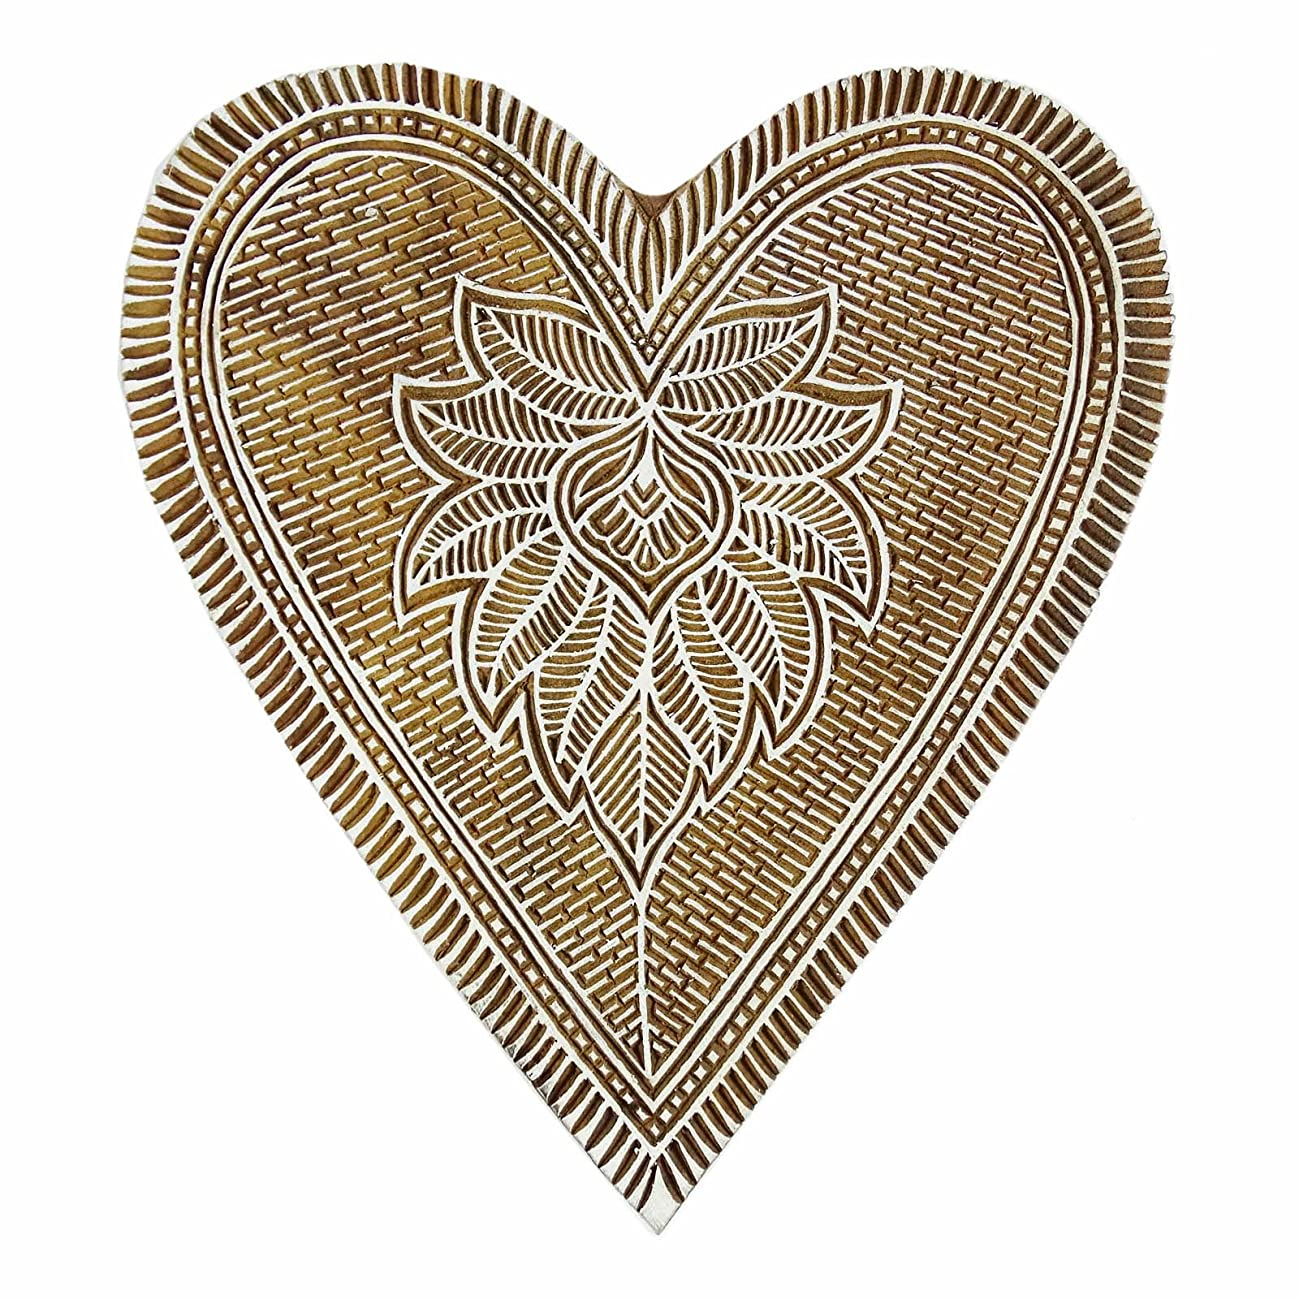 Handcarved Printing Block Wooden Textile Decorative Heart Shape Floral Stamp